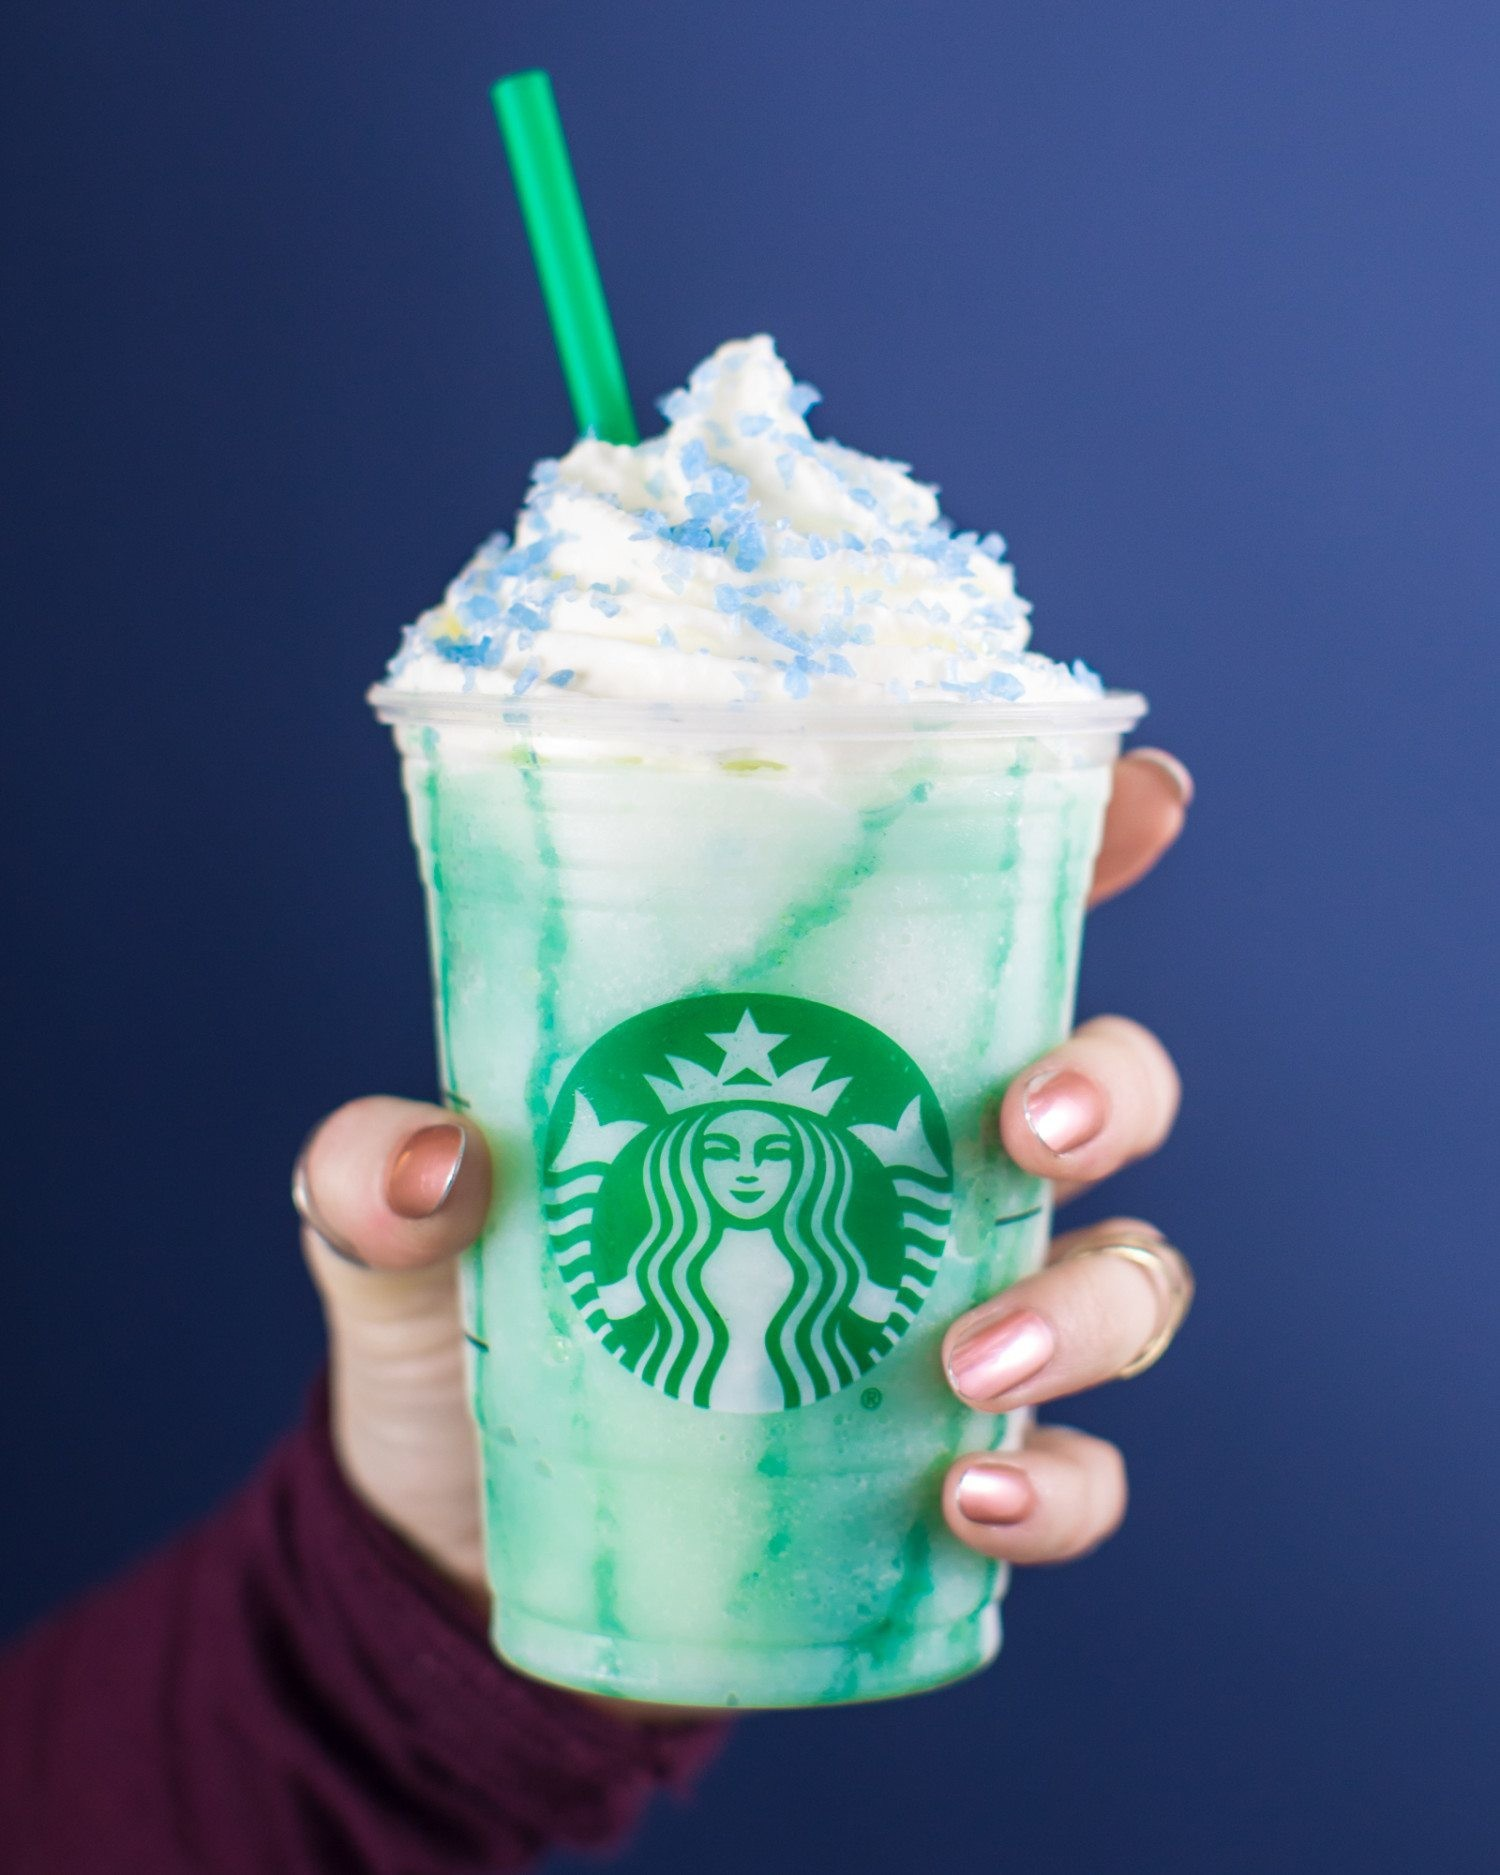 Everything You Need To Know About The New Crystal Ball Frappuccino